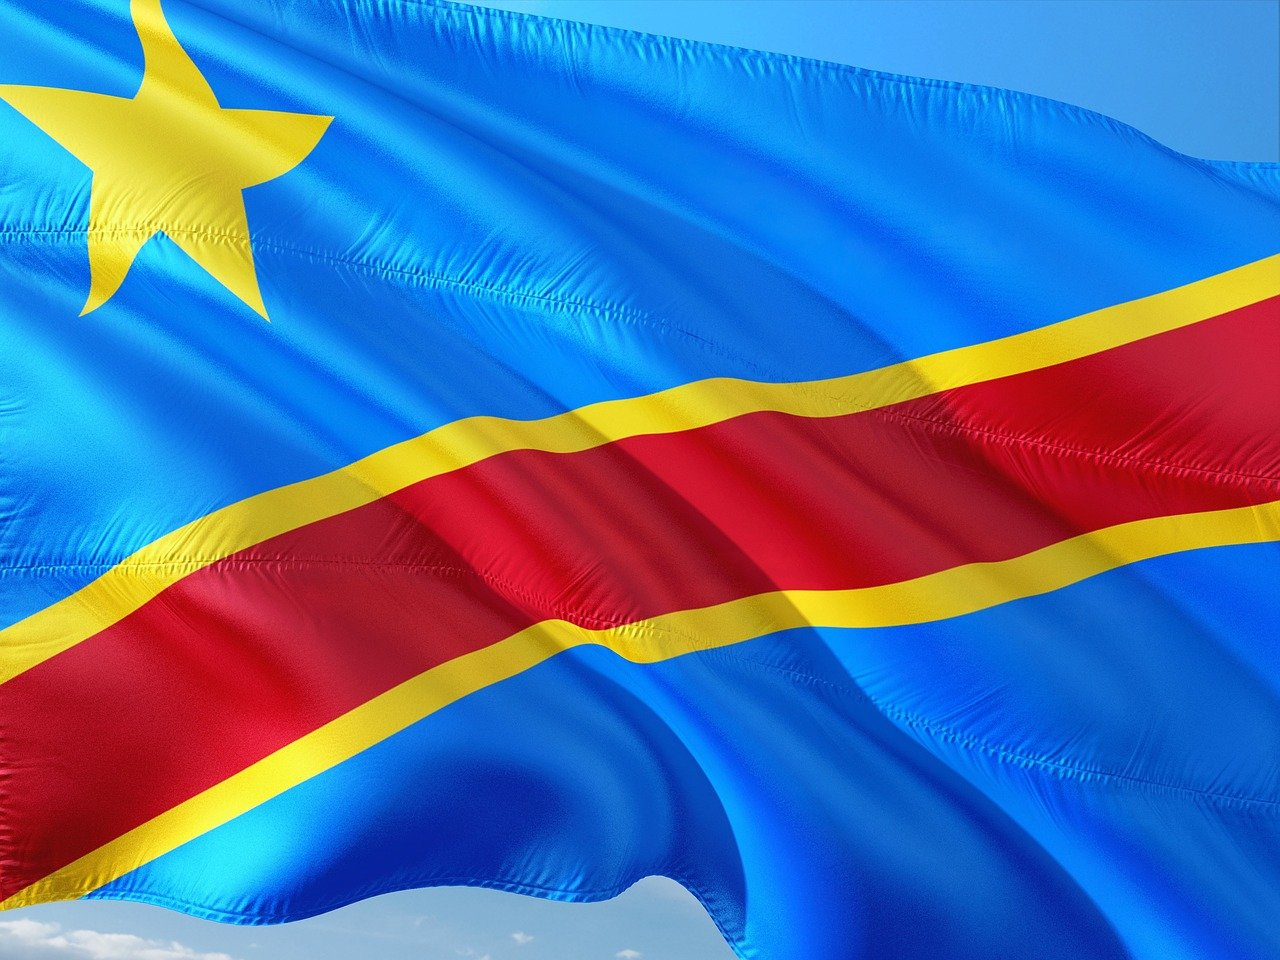 DR Congo ratifies protocol establishing African court of human rights